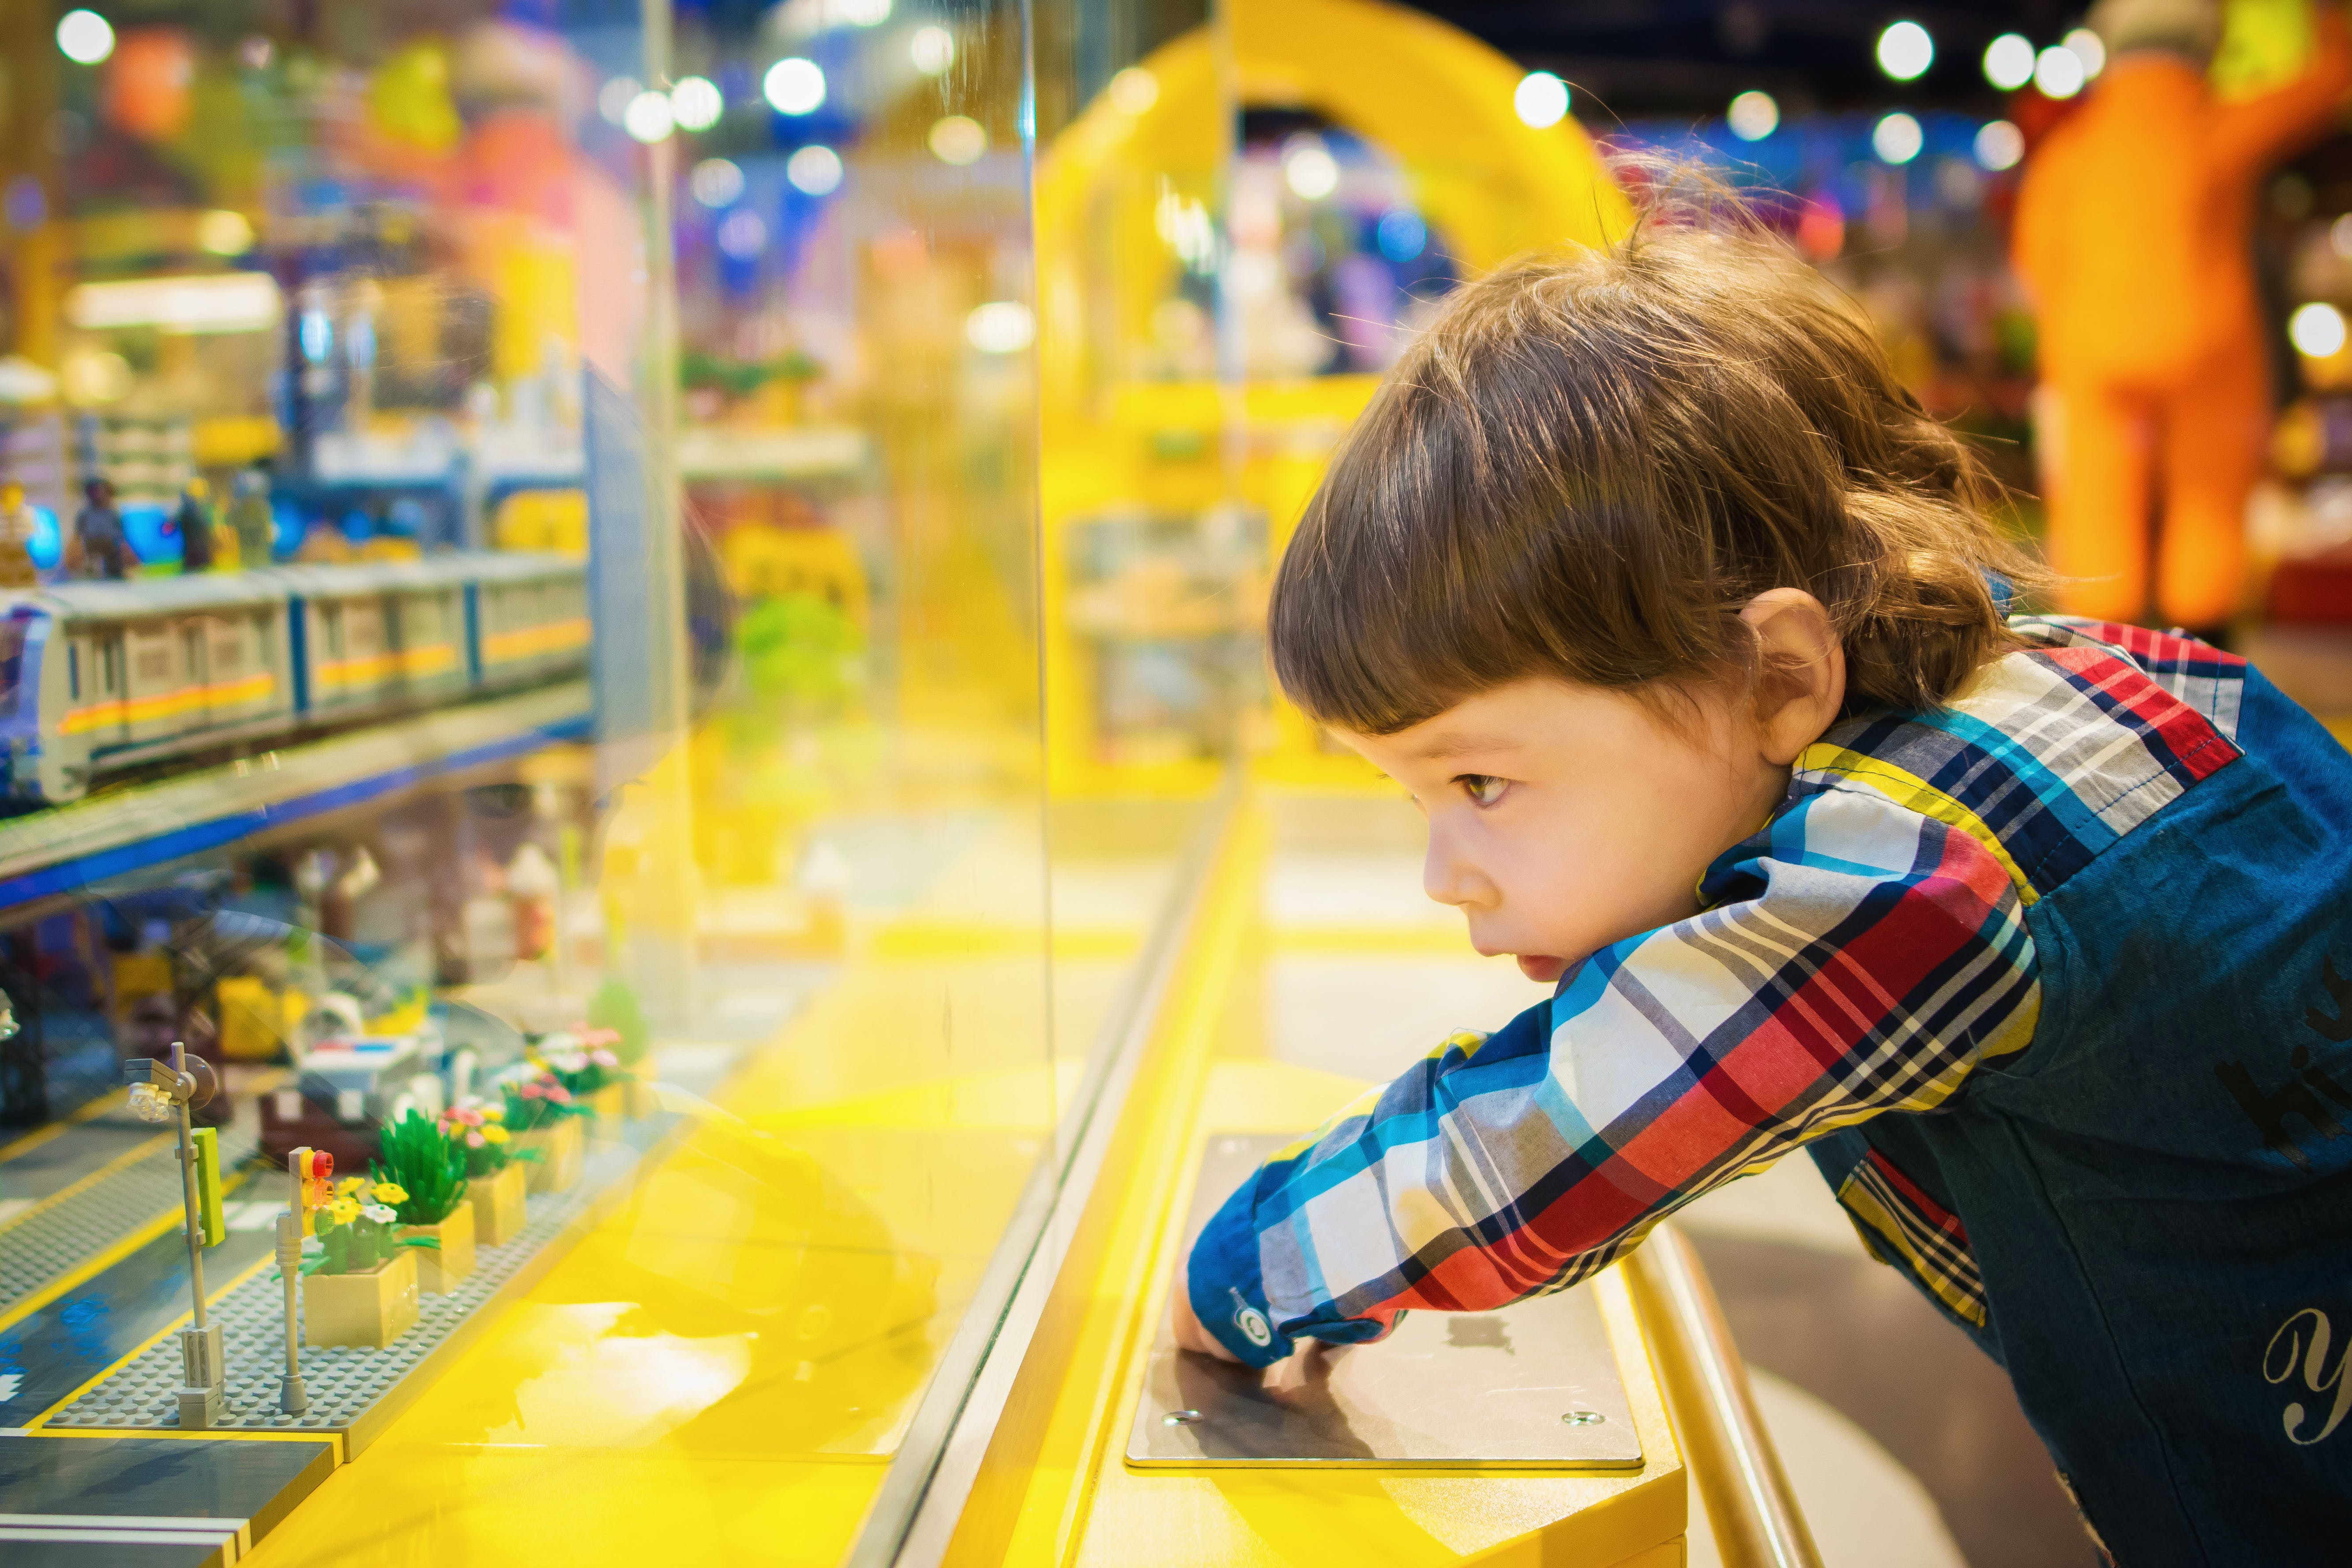 Selective Focus Photography of Toddler in Front of Glass